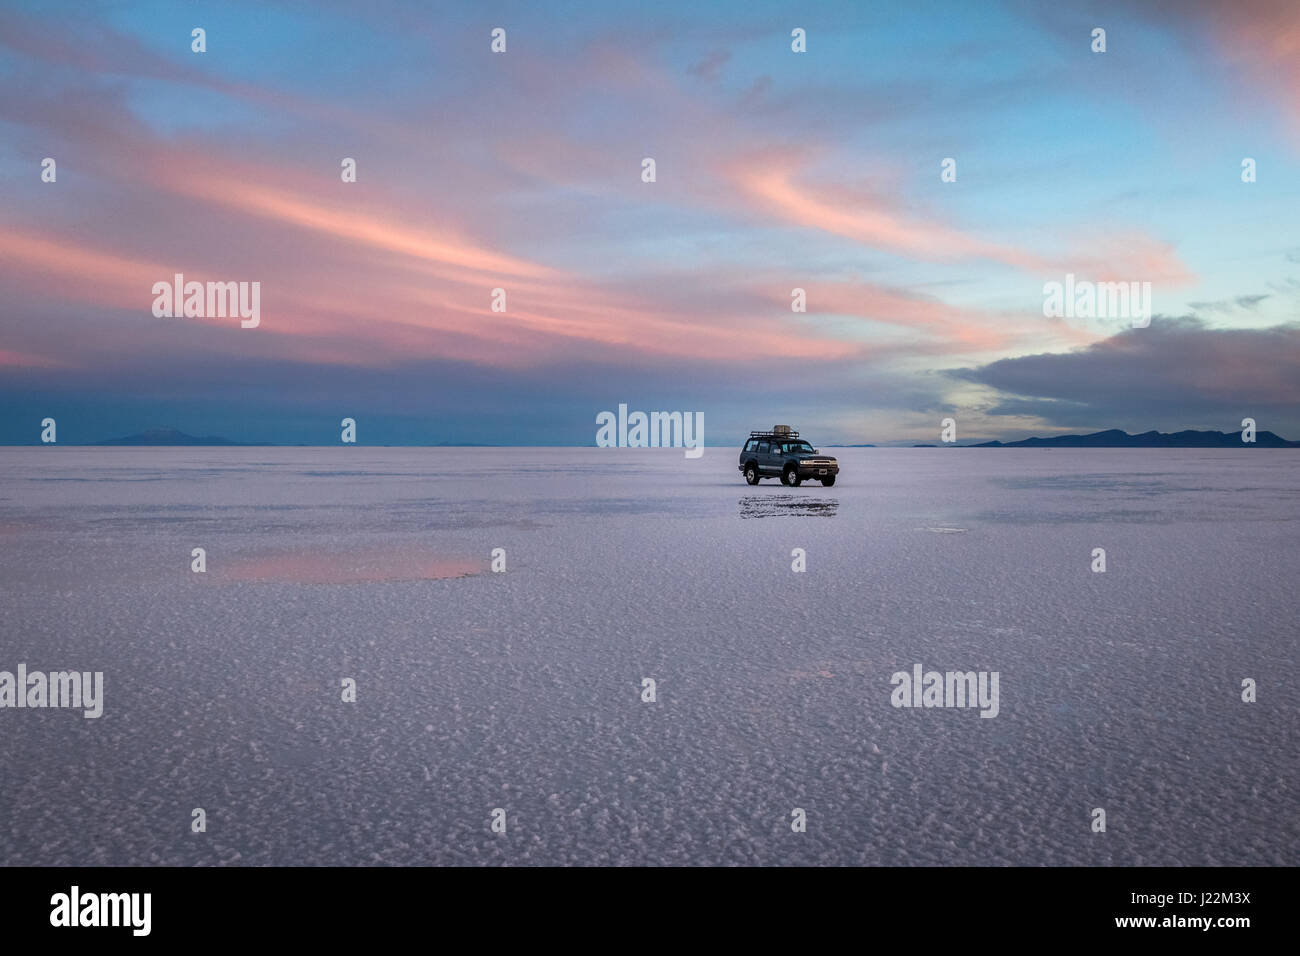 Off-road vehicle at sunrise in Salar de Uyuni salt flat - Potosi Department, Bolivia - Stock Image